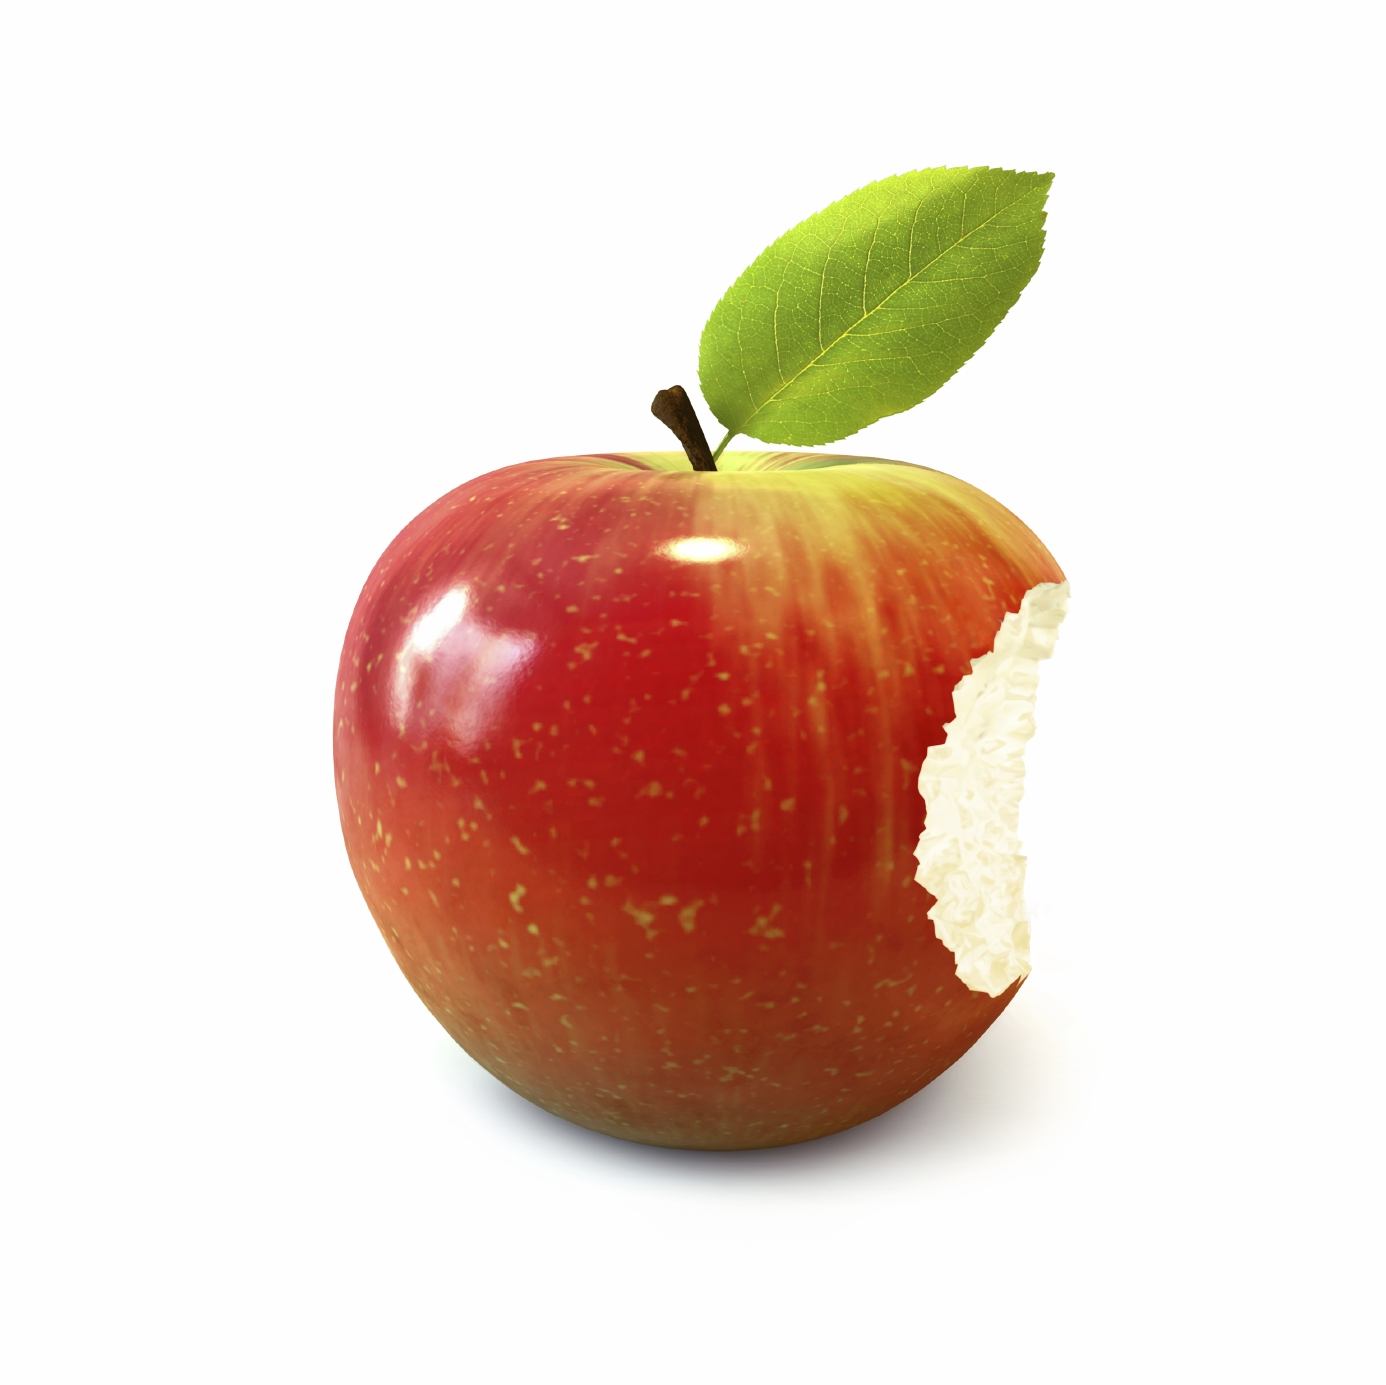 Real apple